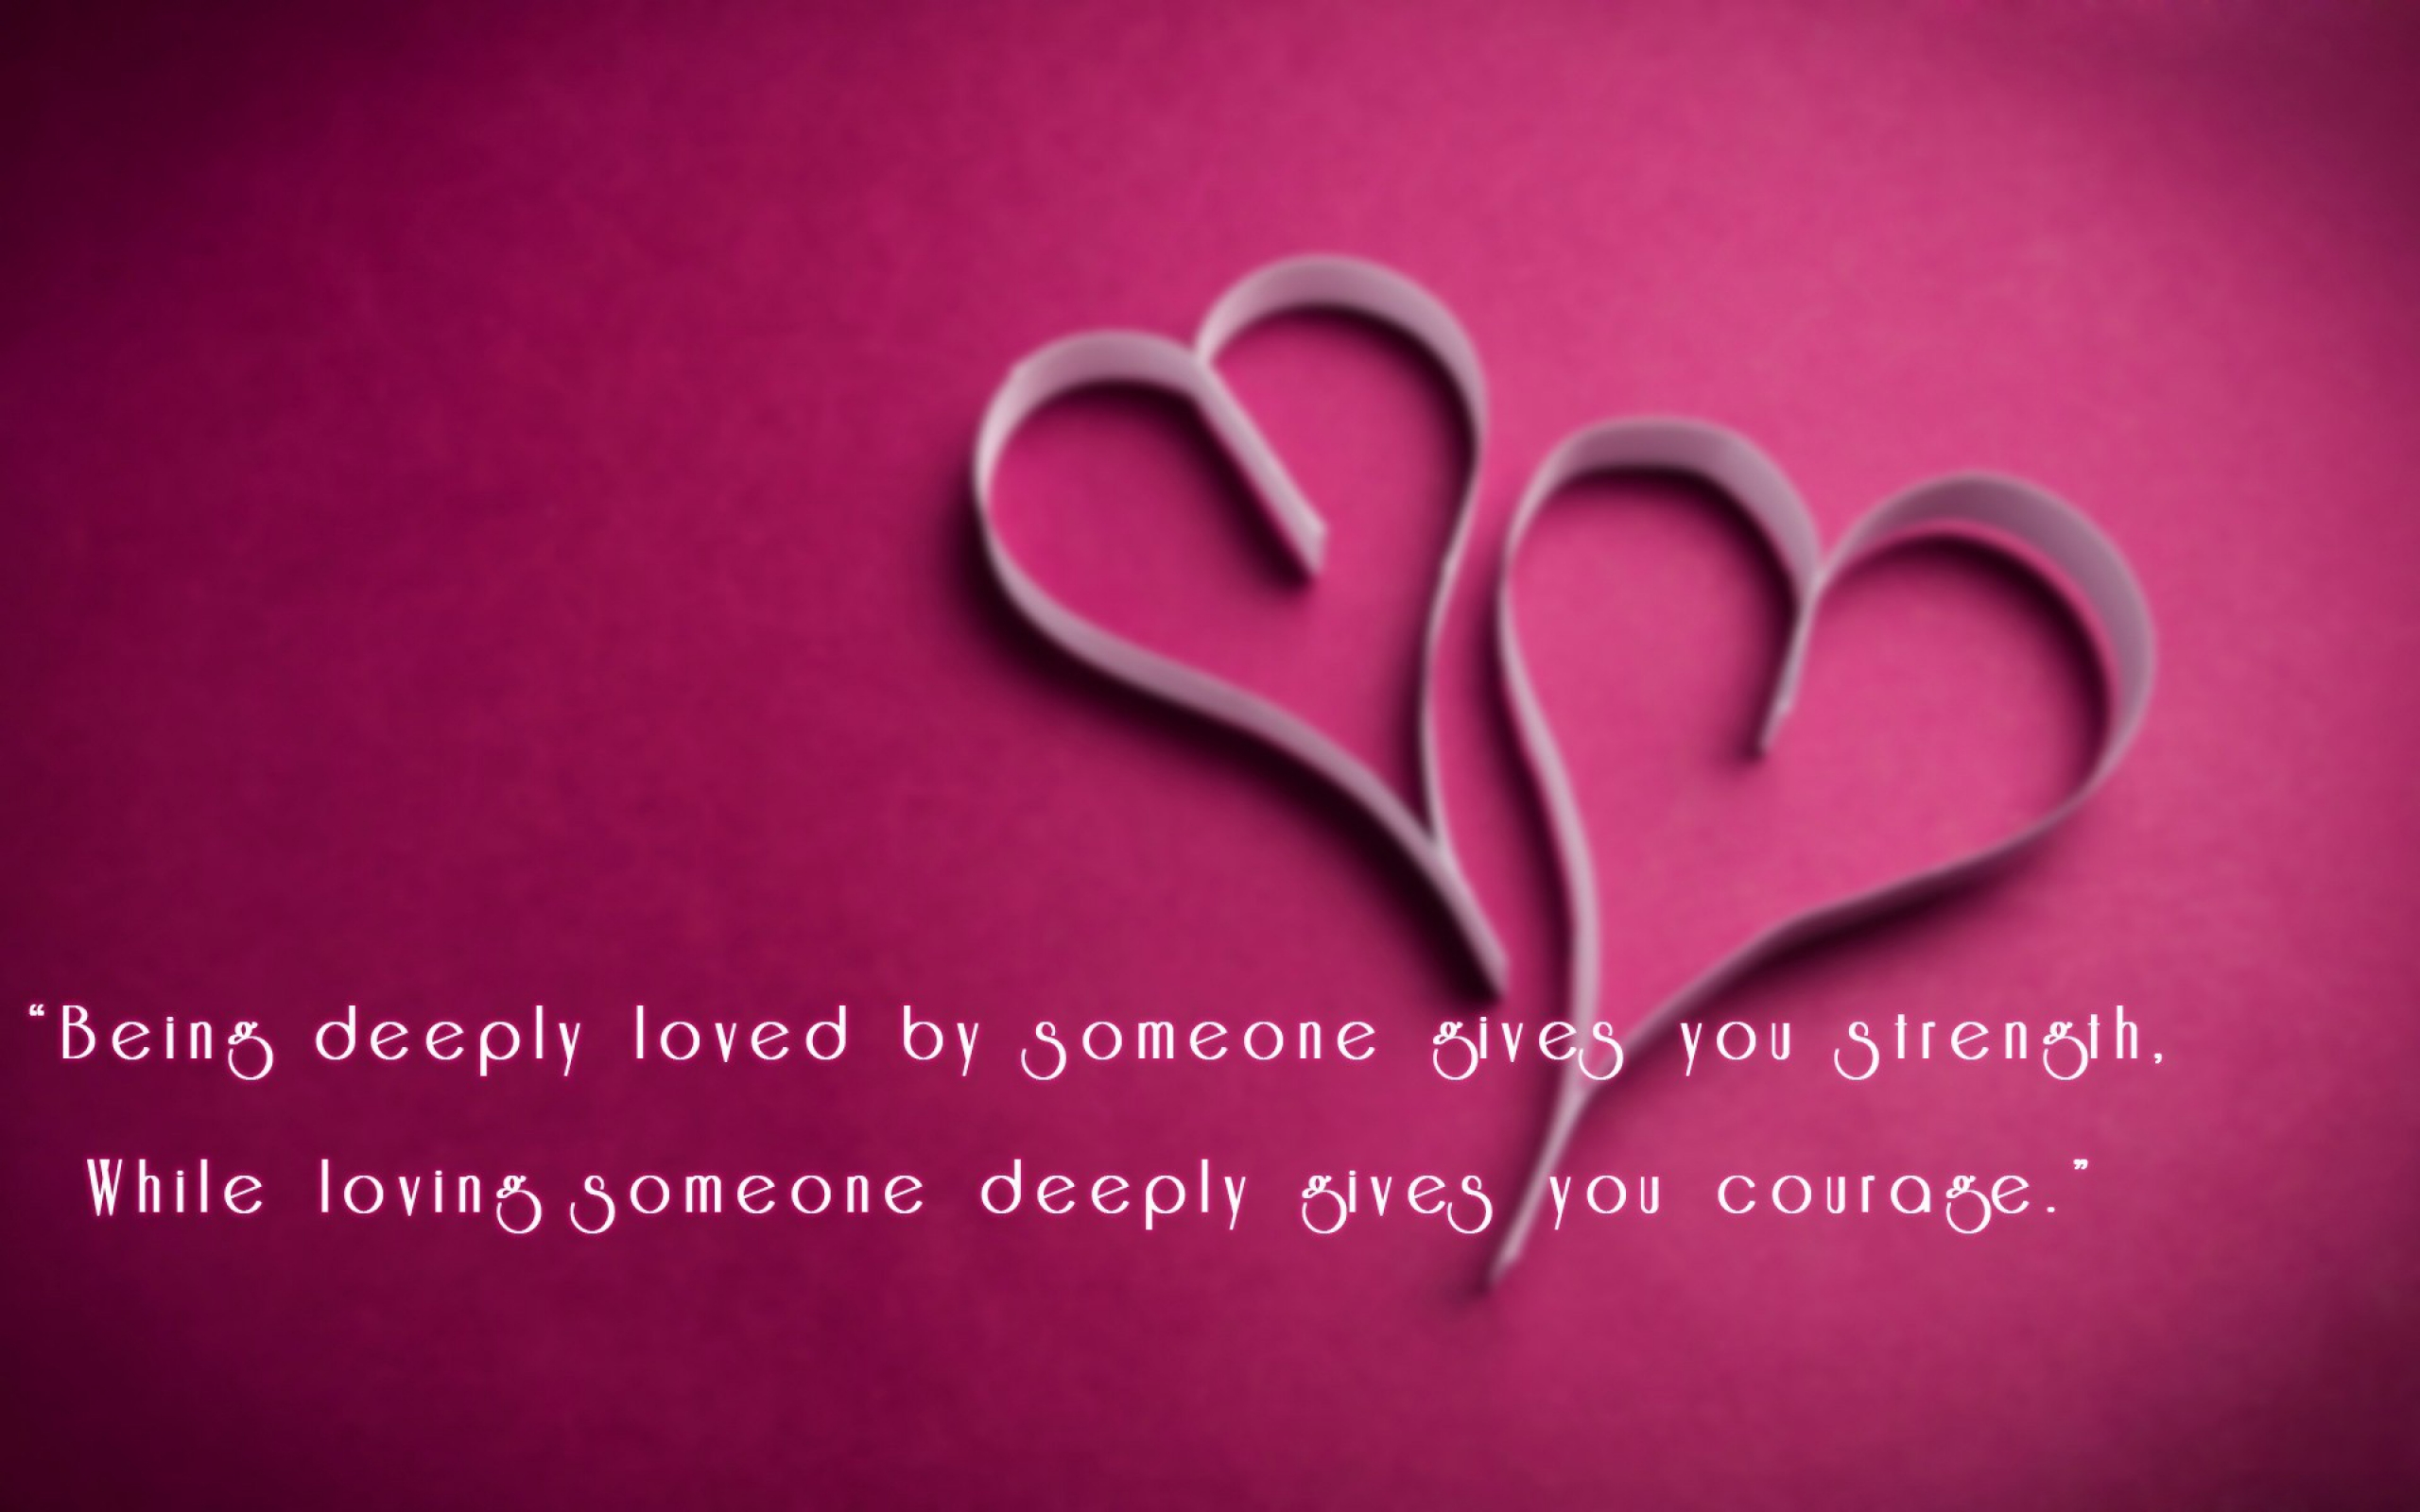 50 Love Wallpaper Hd 1080p Free Download Love Quotes Pic: Cool Love Quote Desktop Wallpaper